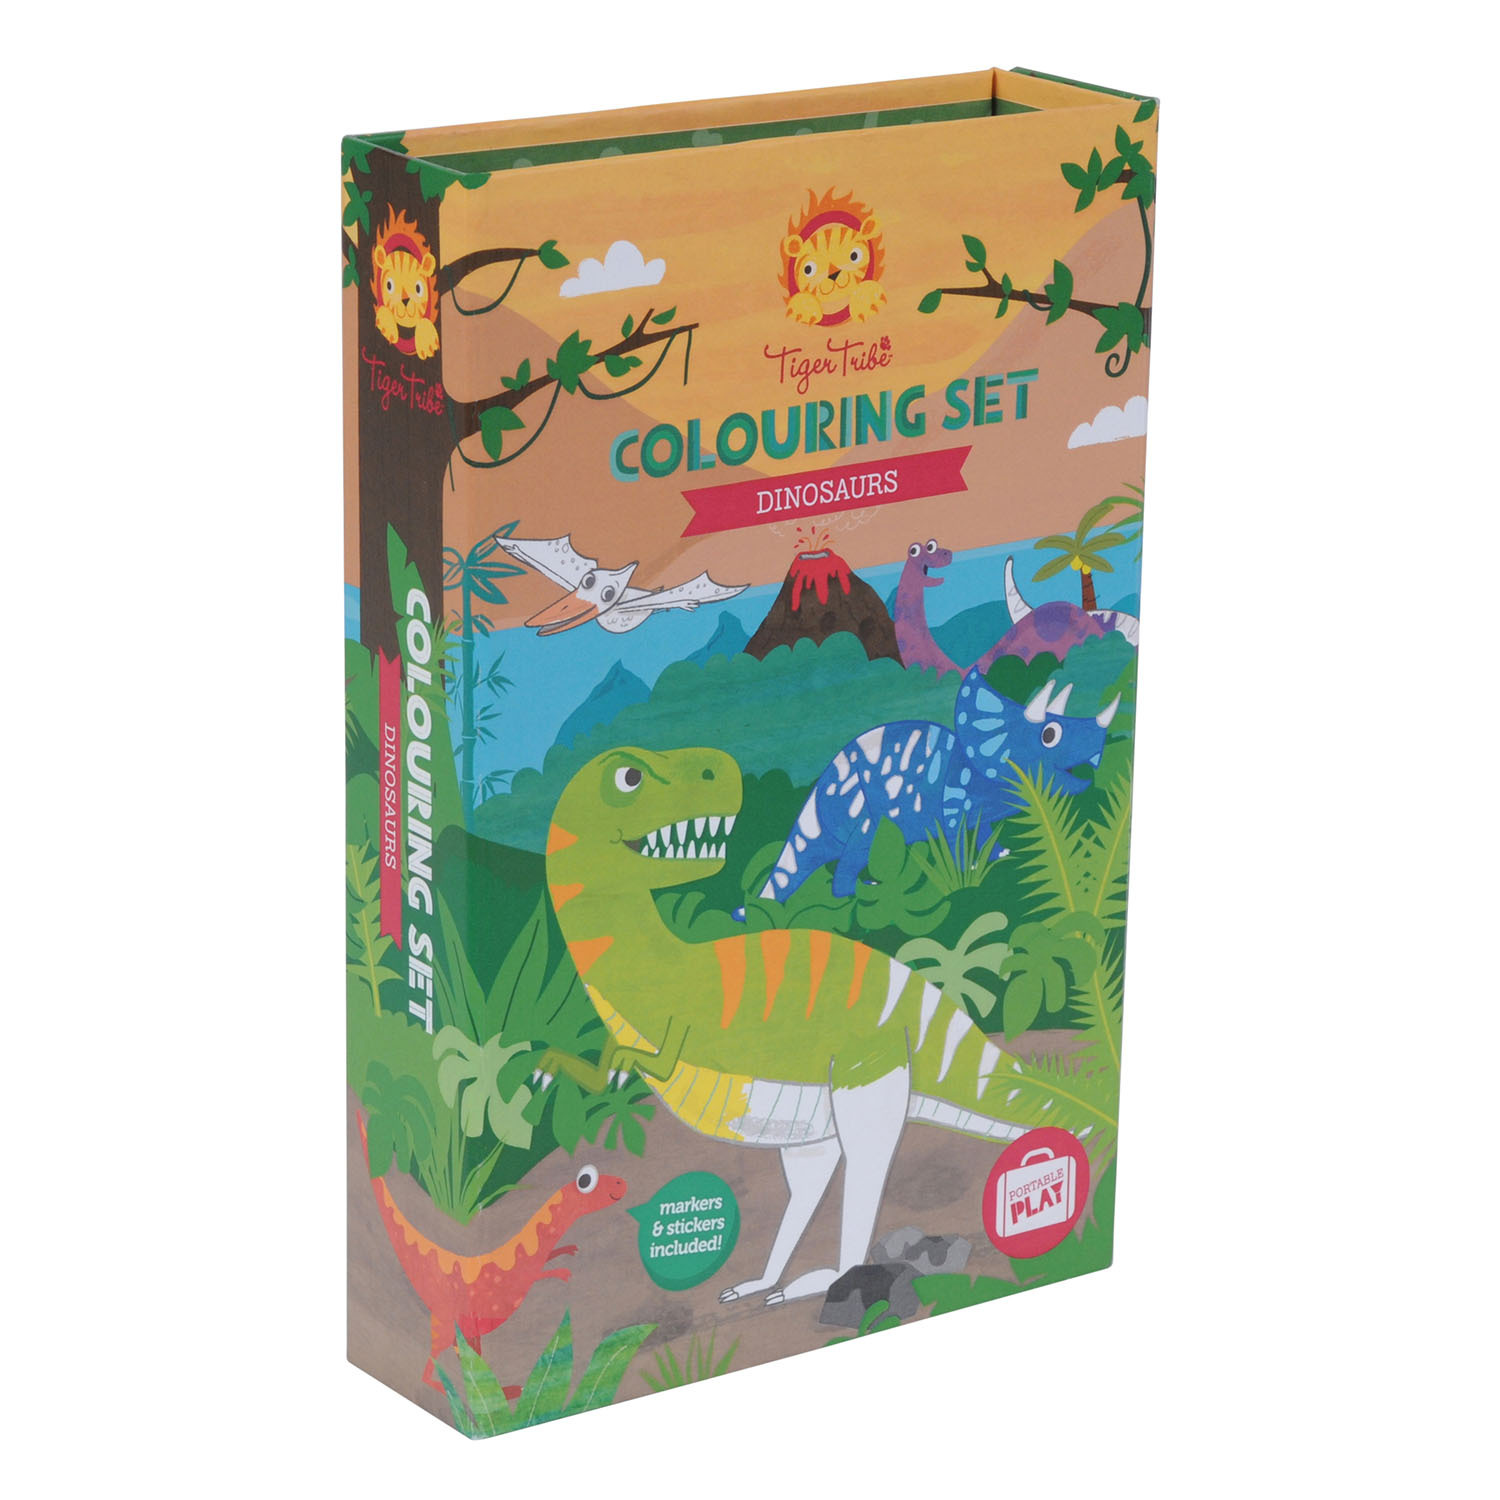 Colouring set - Dinosaurs by Tiger Tribe